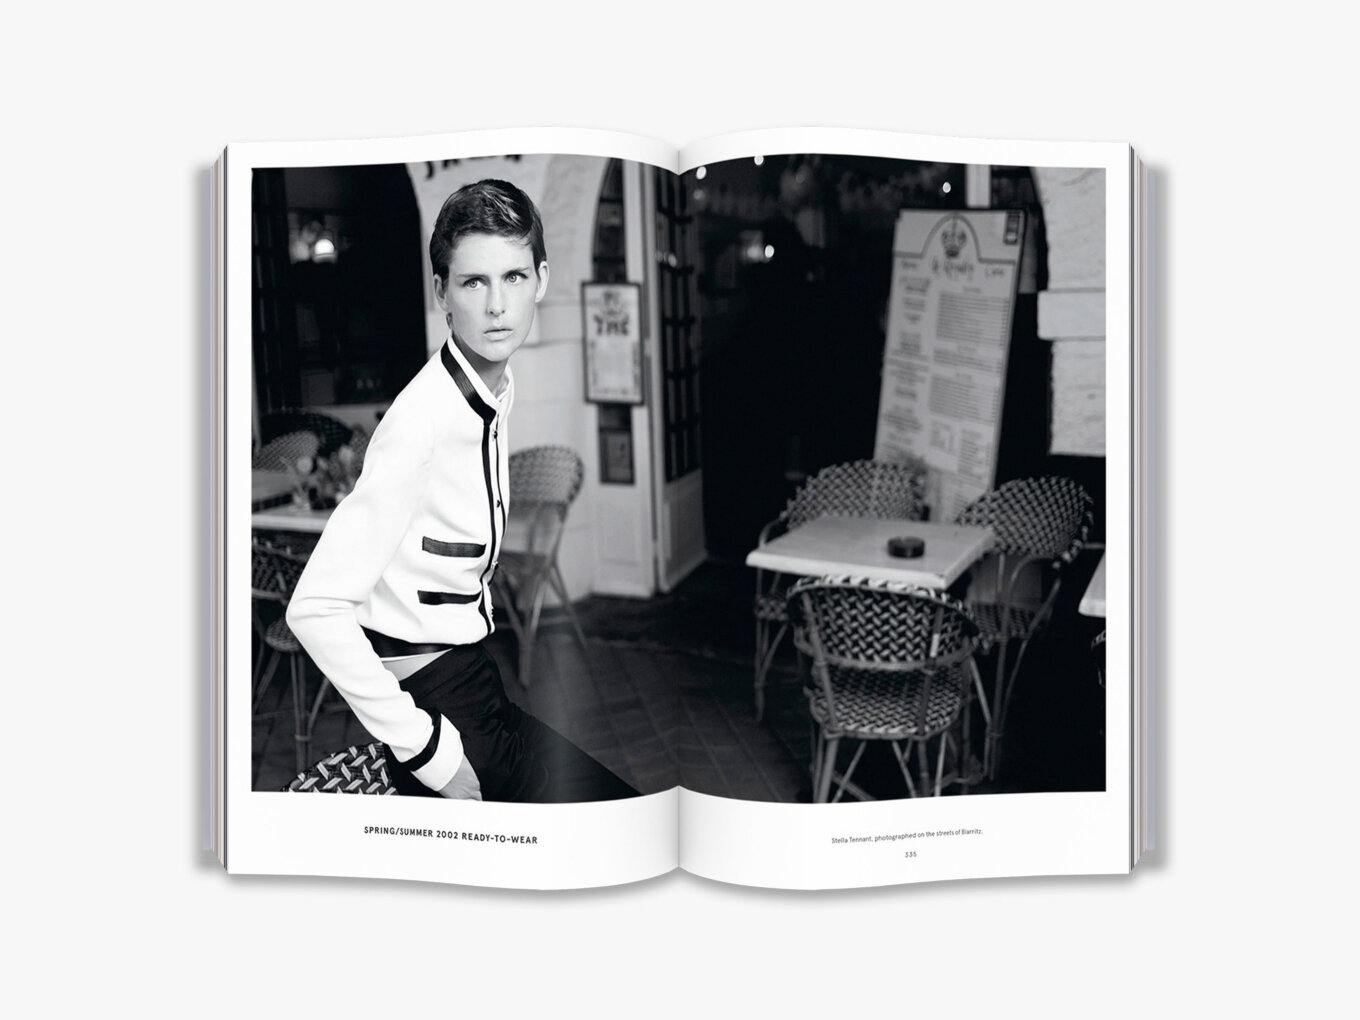 CHANEL - The Karl Lagerfeld Campaignsby Patrick Mauriès & Karl Lagerfeld | Thames & Hudson